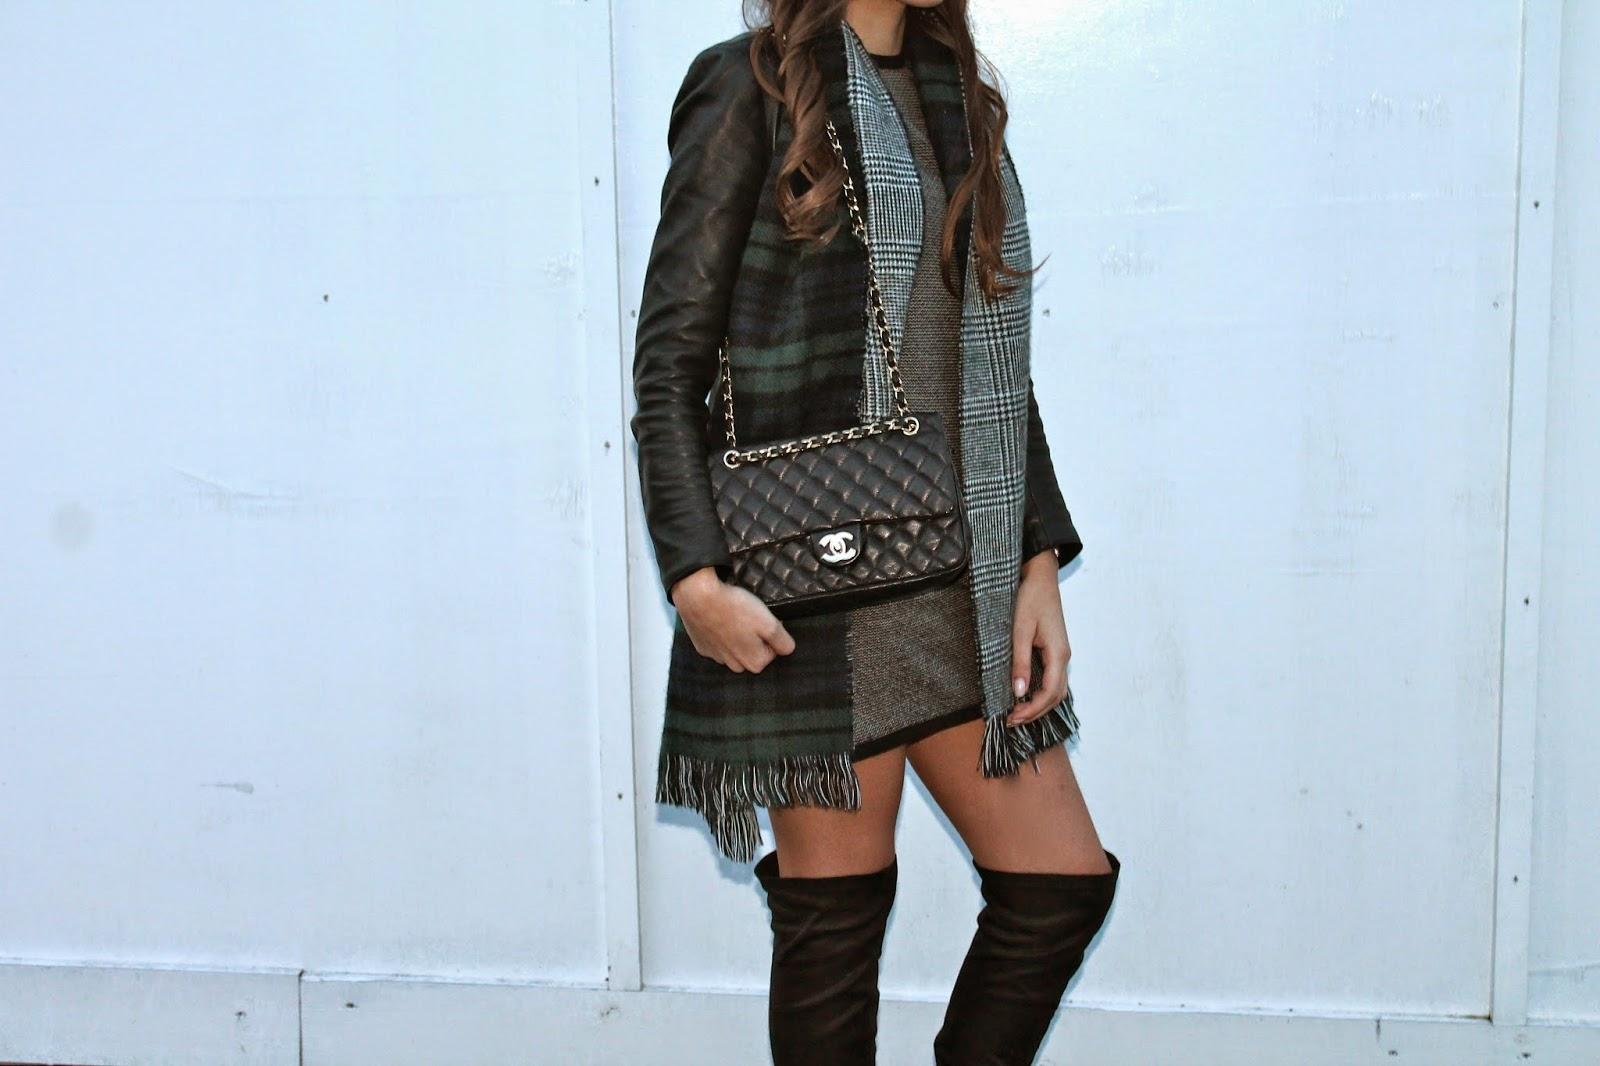 ootd zara jacquard dress and thigh high boots this is teral